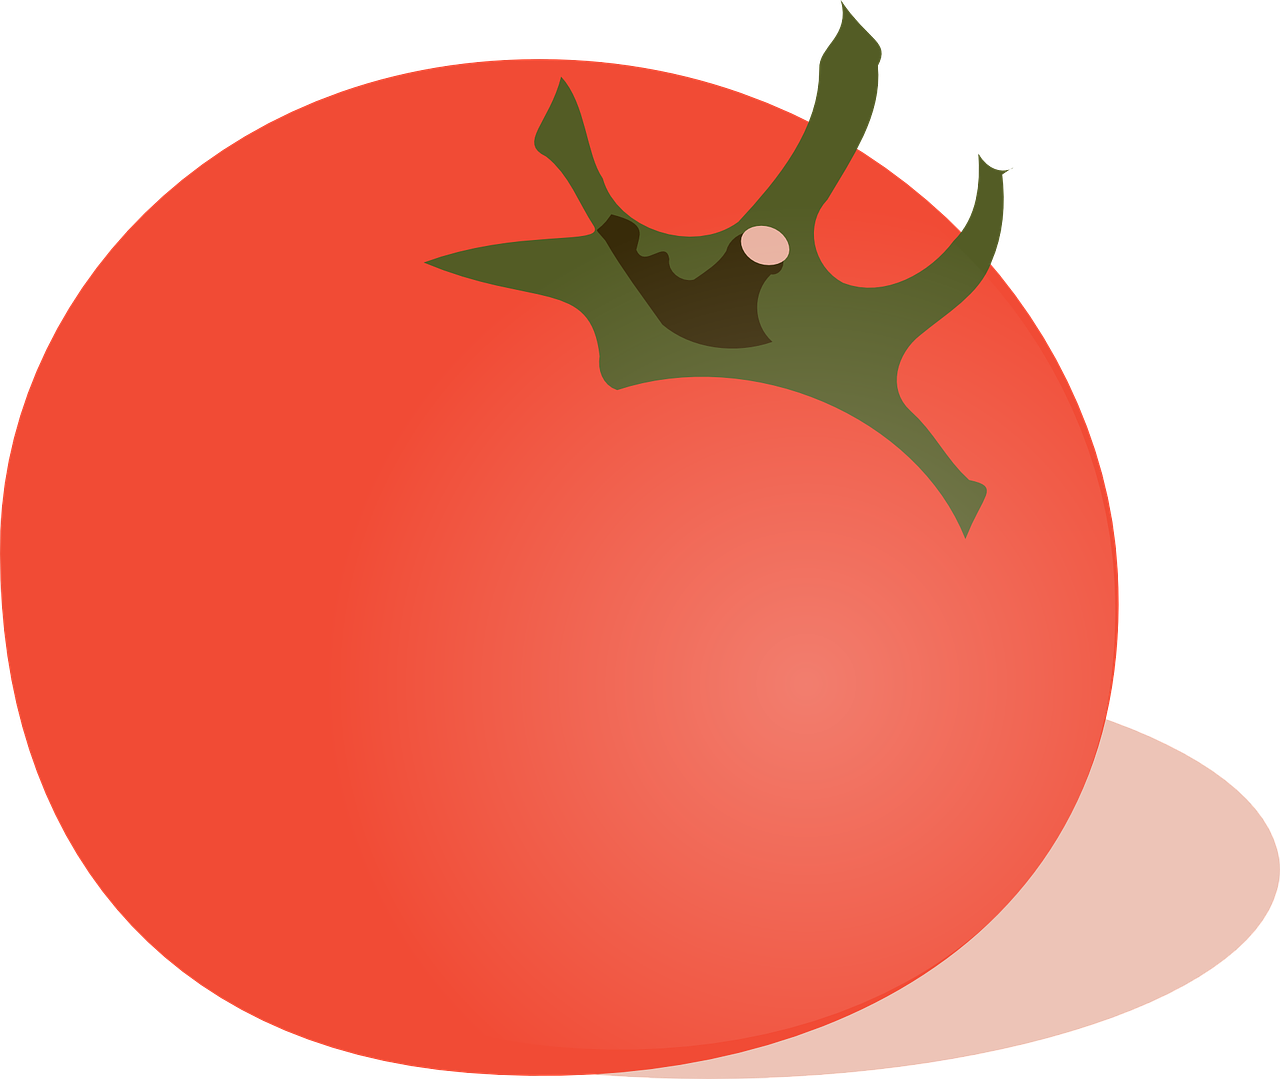 tomato vegetable red free photo